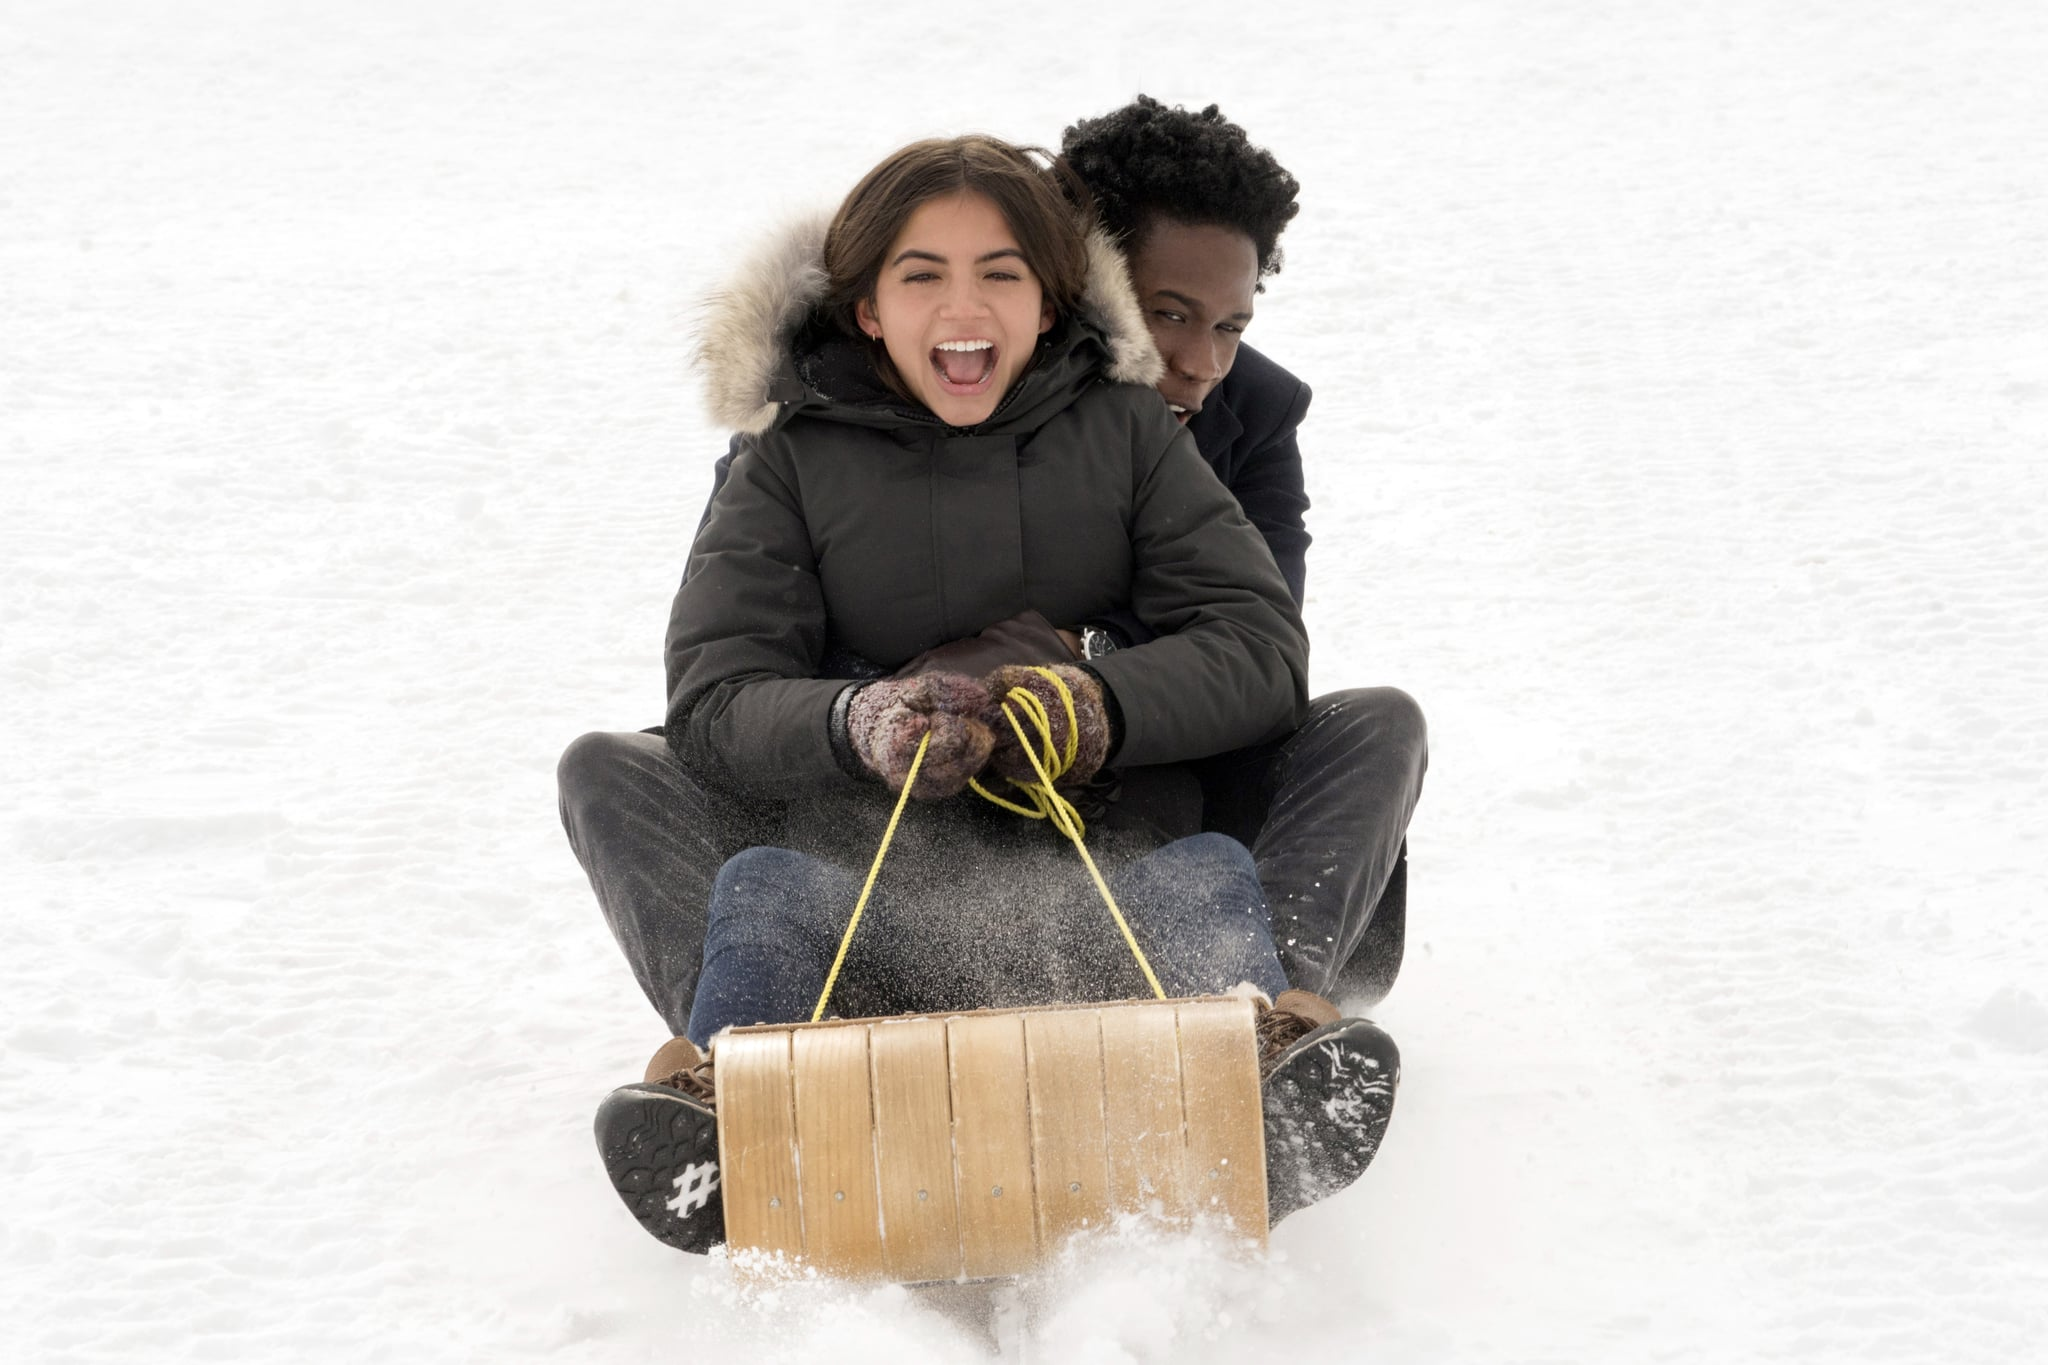 Let It Snow - Isabela Moner, Shameik Moore - Photo Credit: Netflix / Steve Wilkie